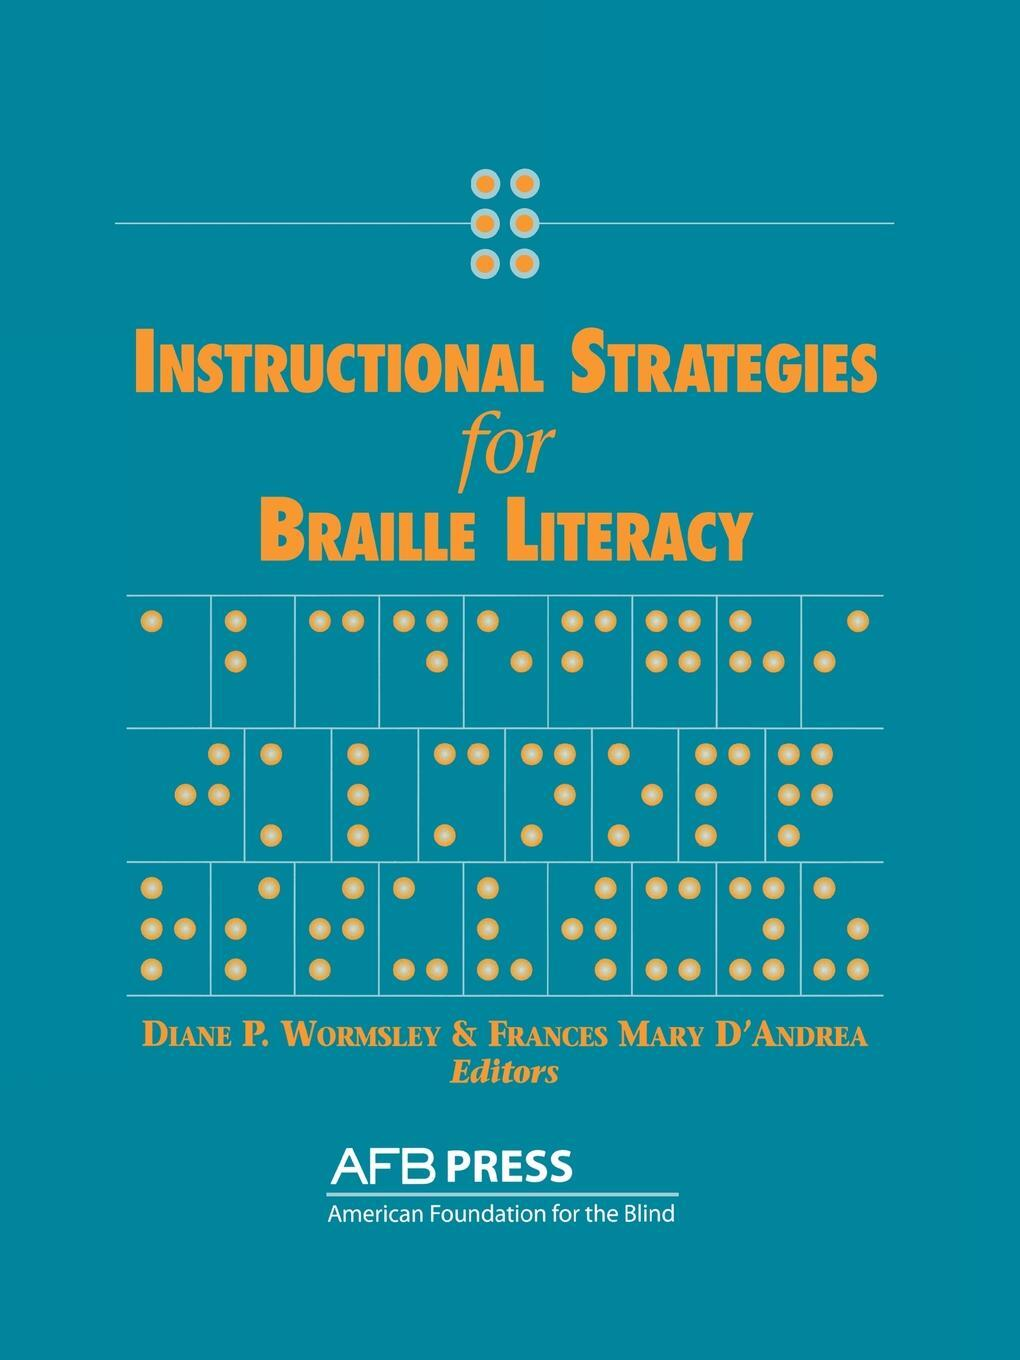 Instructional Strategies for Braille Literacy.